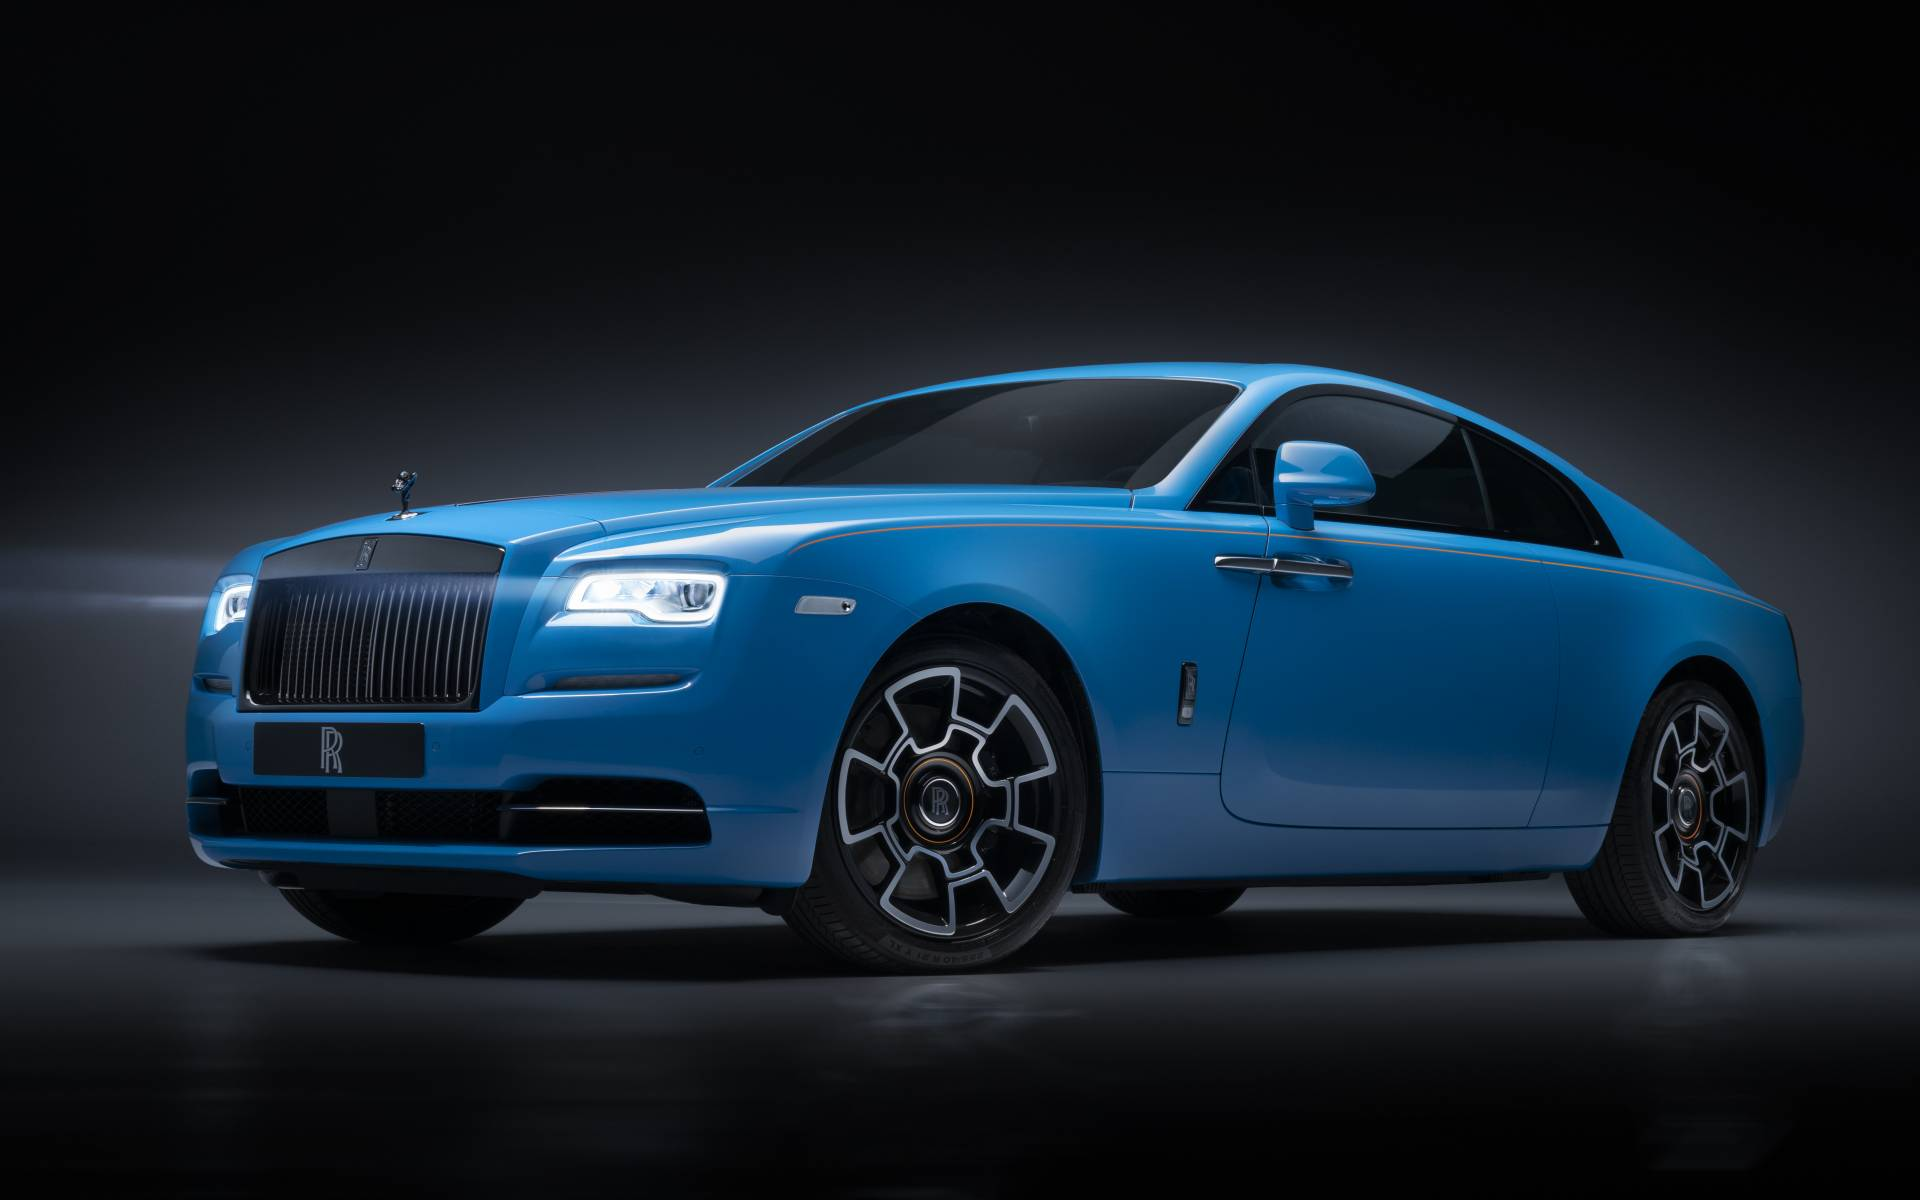 2020 Rolls Royce Wraith News Reviews Picture Galleries And Videos The Car Guide